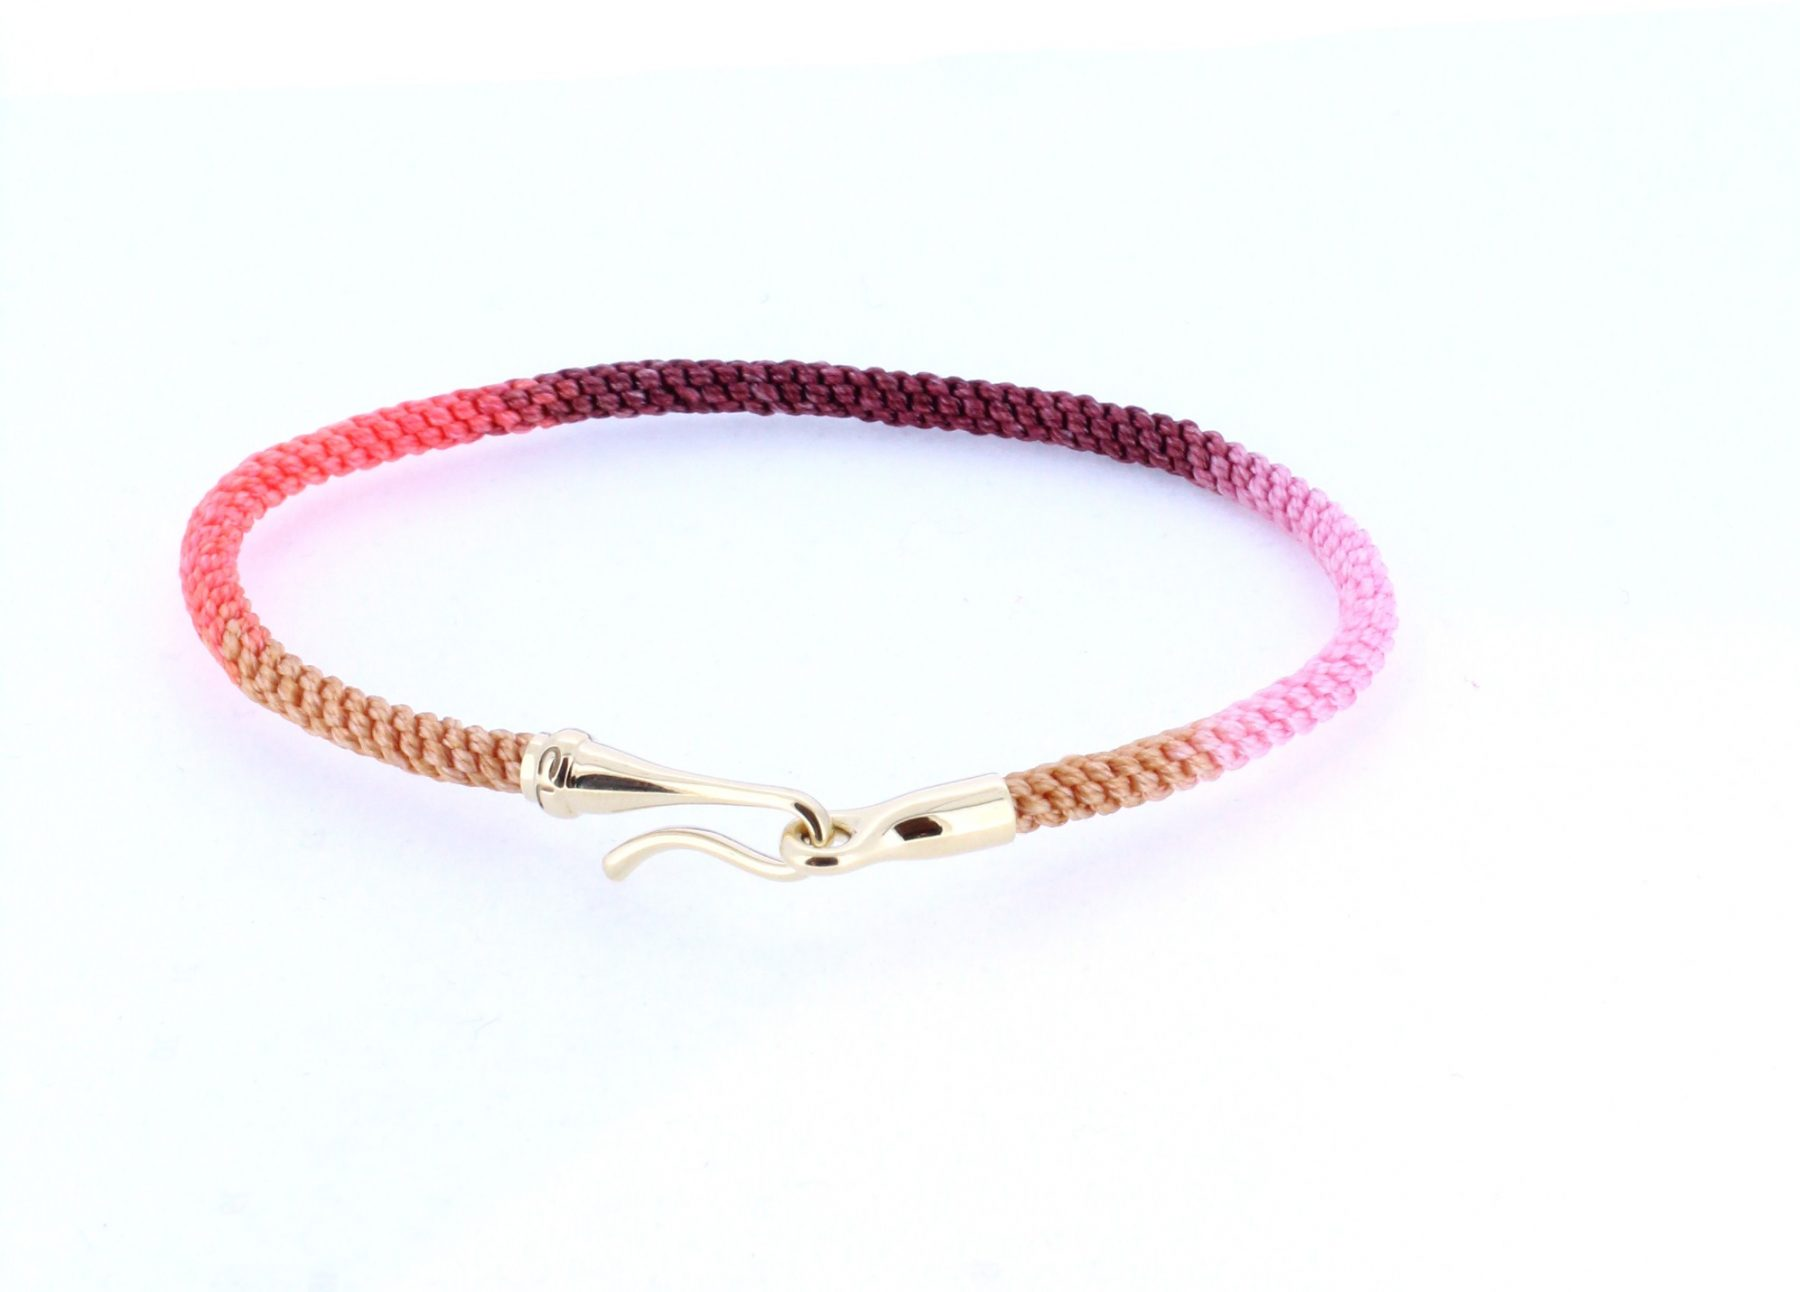 Armband Life Berry 18ct Gold - Ole Lynggaard - A3040-414